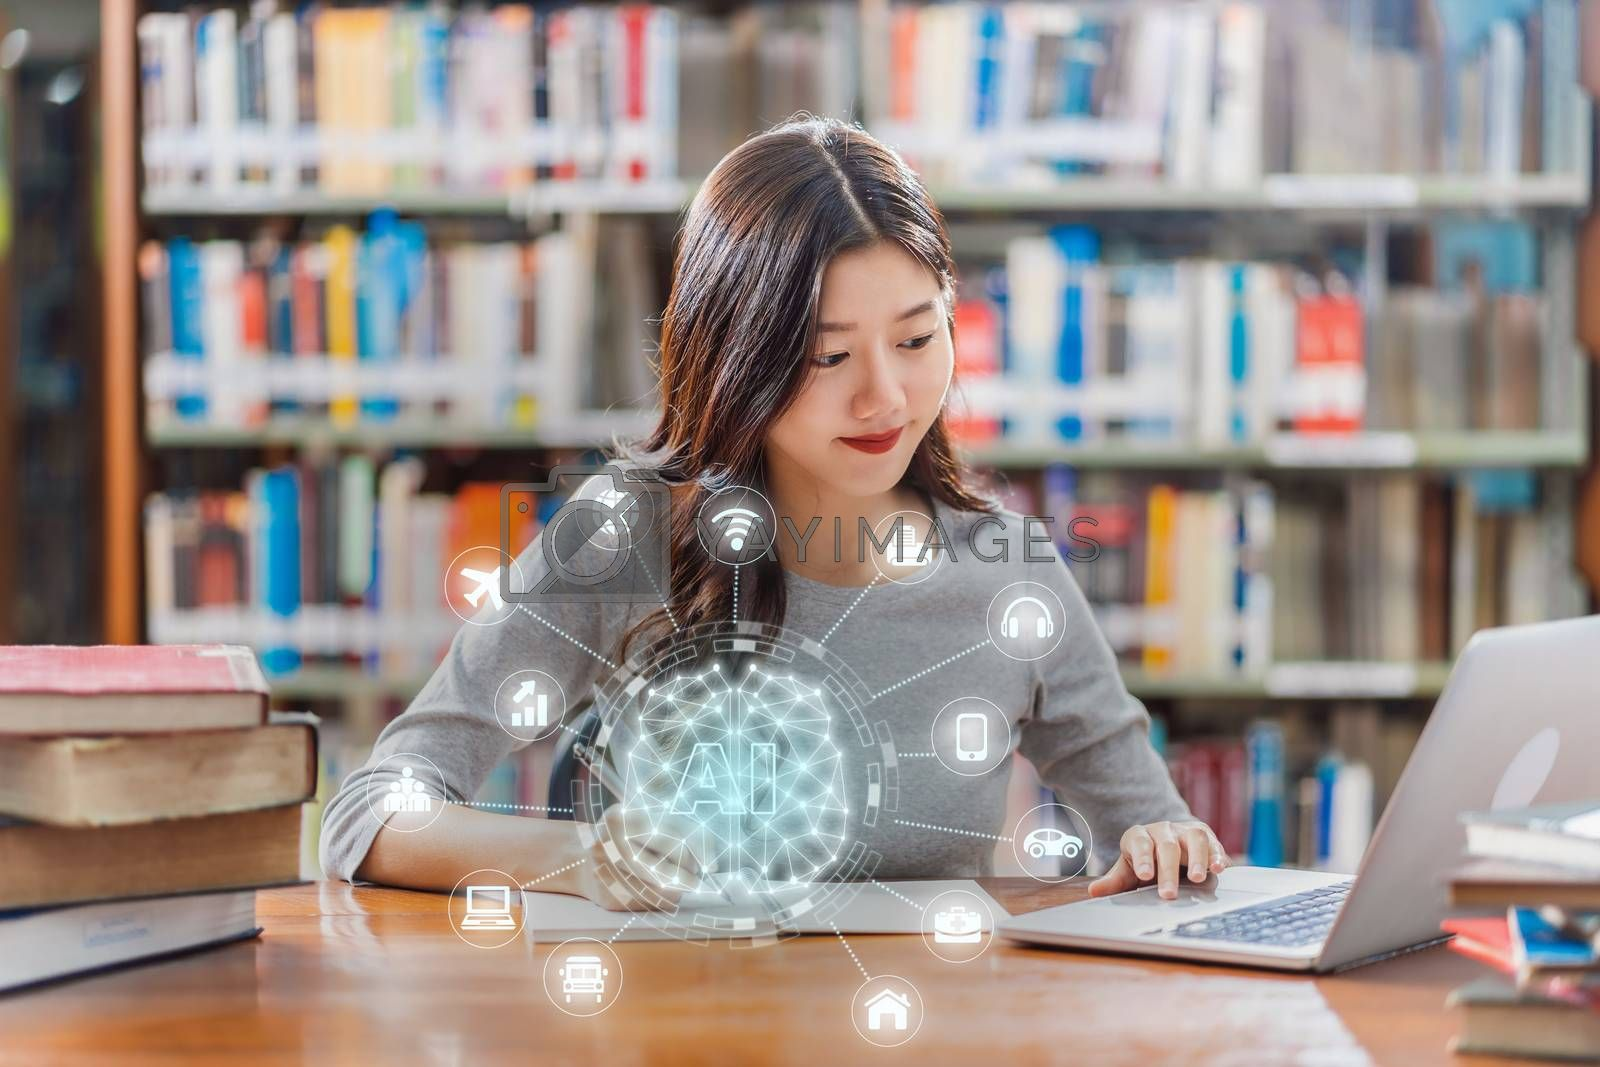 Polygonal brain shape of an artificial intelligence with various icon of smart city Internet of Things Technology over Asian young Student using technology laptop in library of university